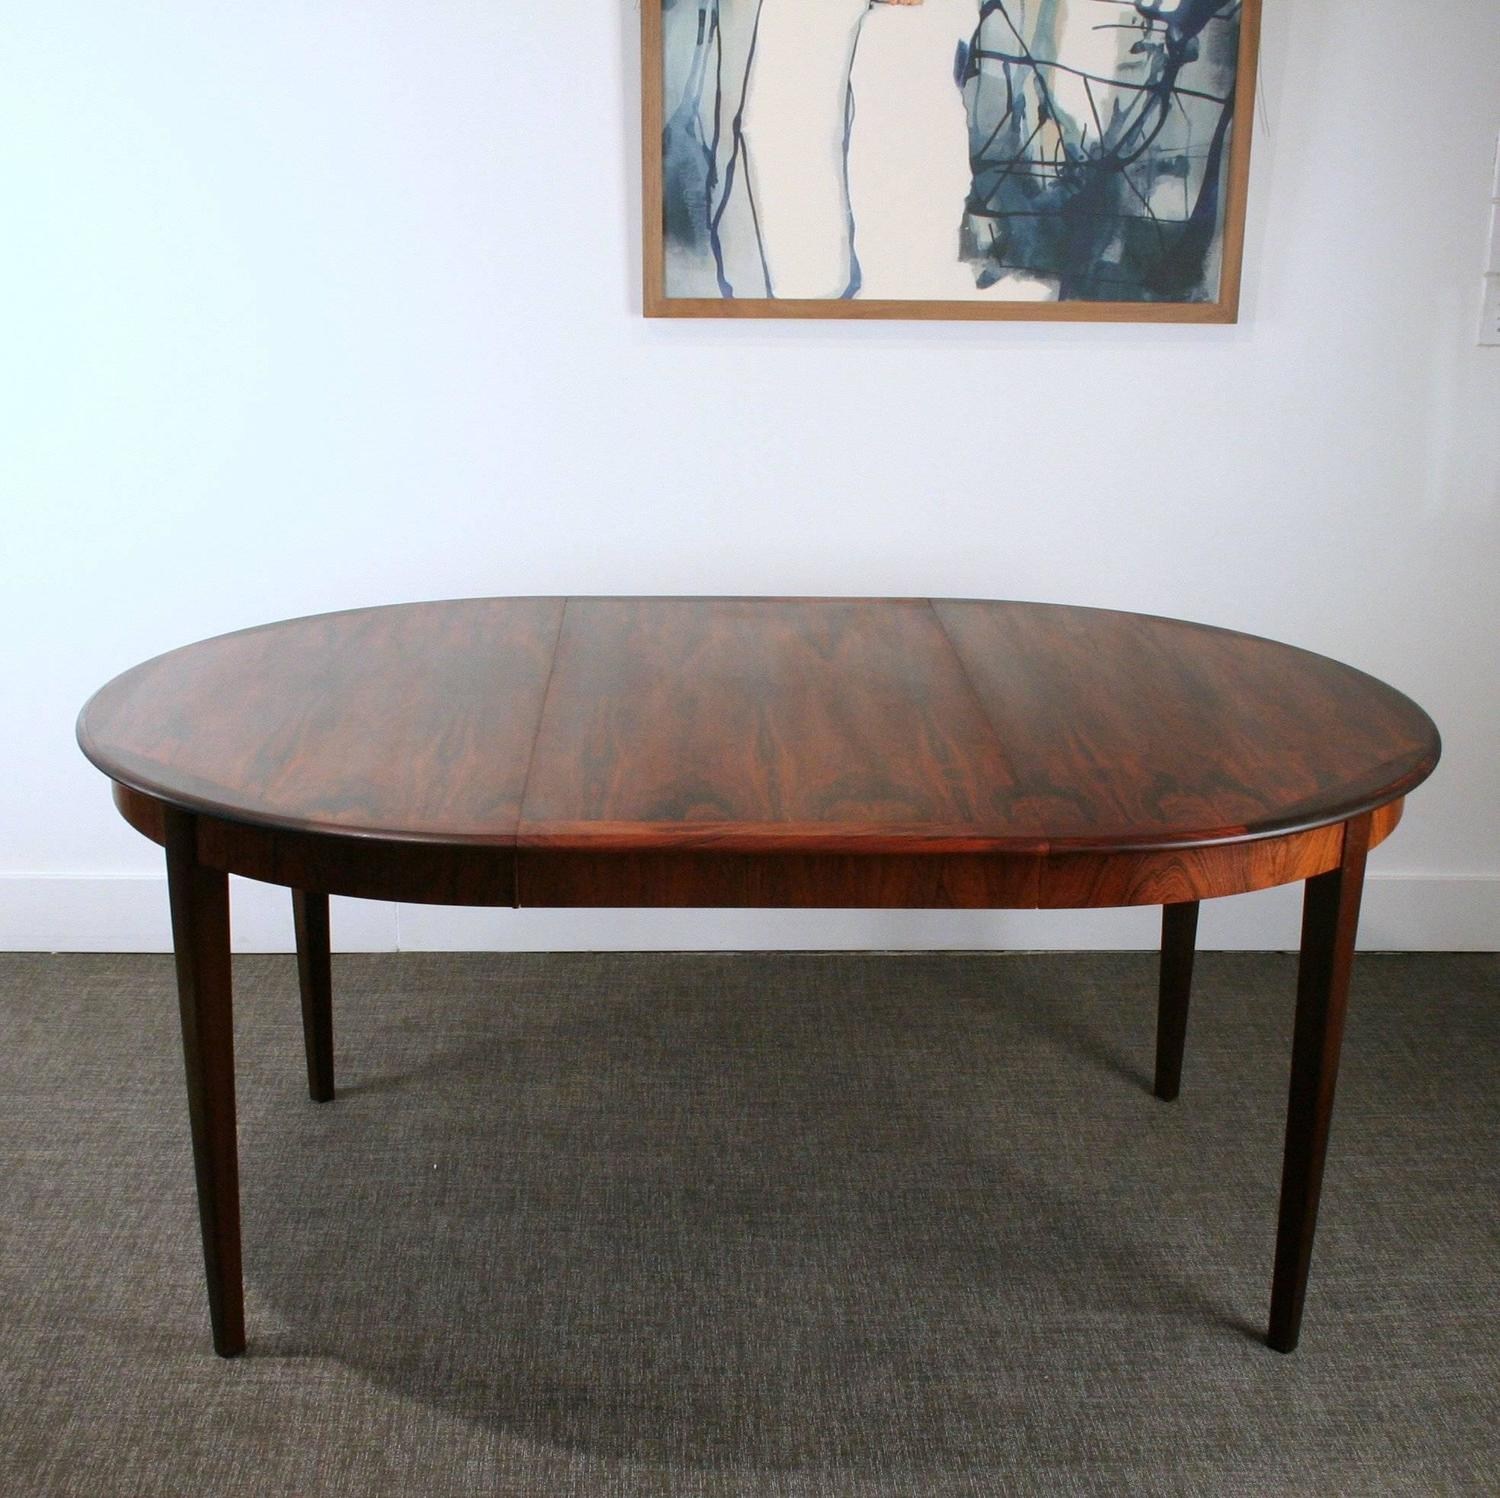 Vintage Danish Rosewood Round Dining Table For Sale at 1stdibs : IMG2493z from www.1stdibs.com size 1500 x 1498 jpeg 222kB